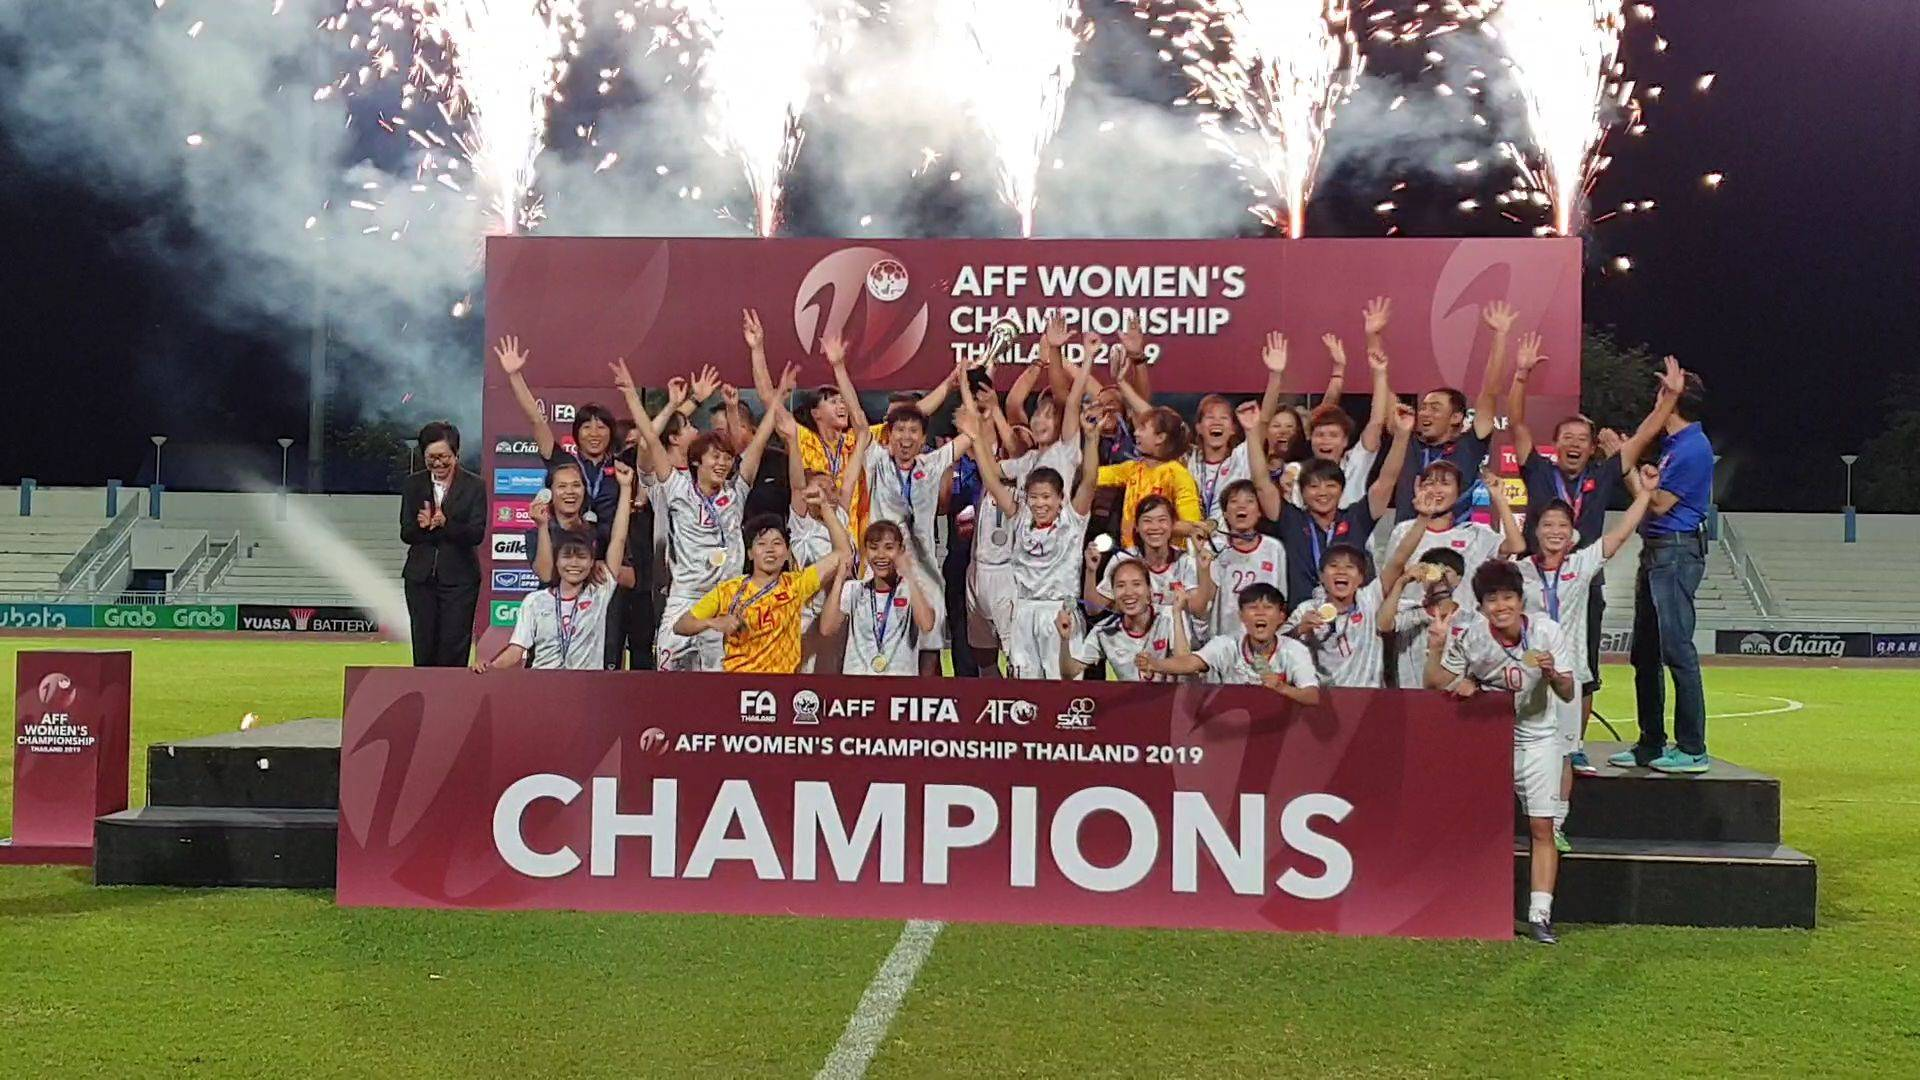 Vietnam Crowned AFF Women's Champions After Victory Over Thailand